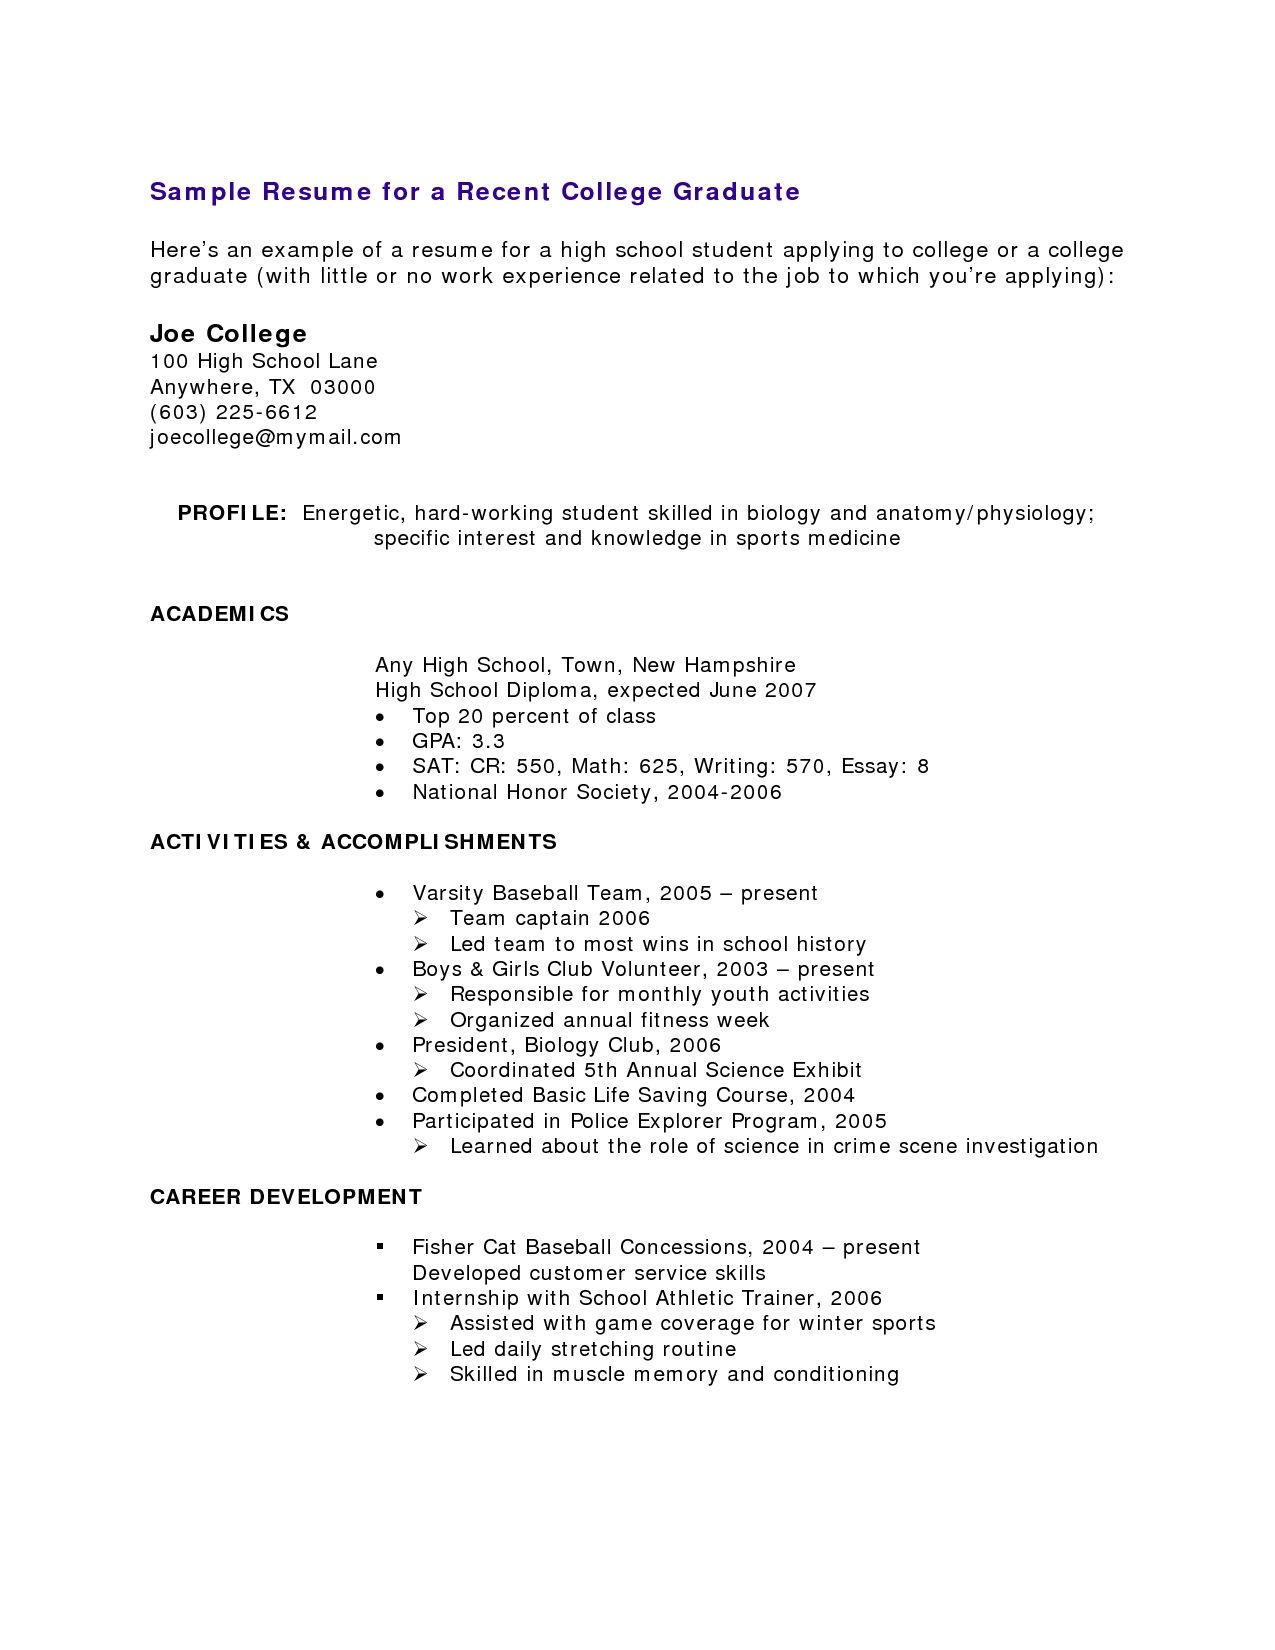 Undergraduate Student Resume Sample High School Student Resume With No Work Experience Resume